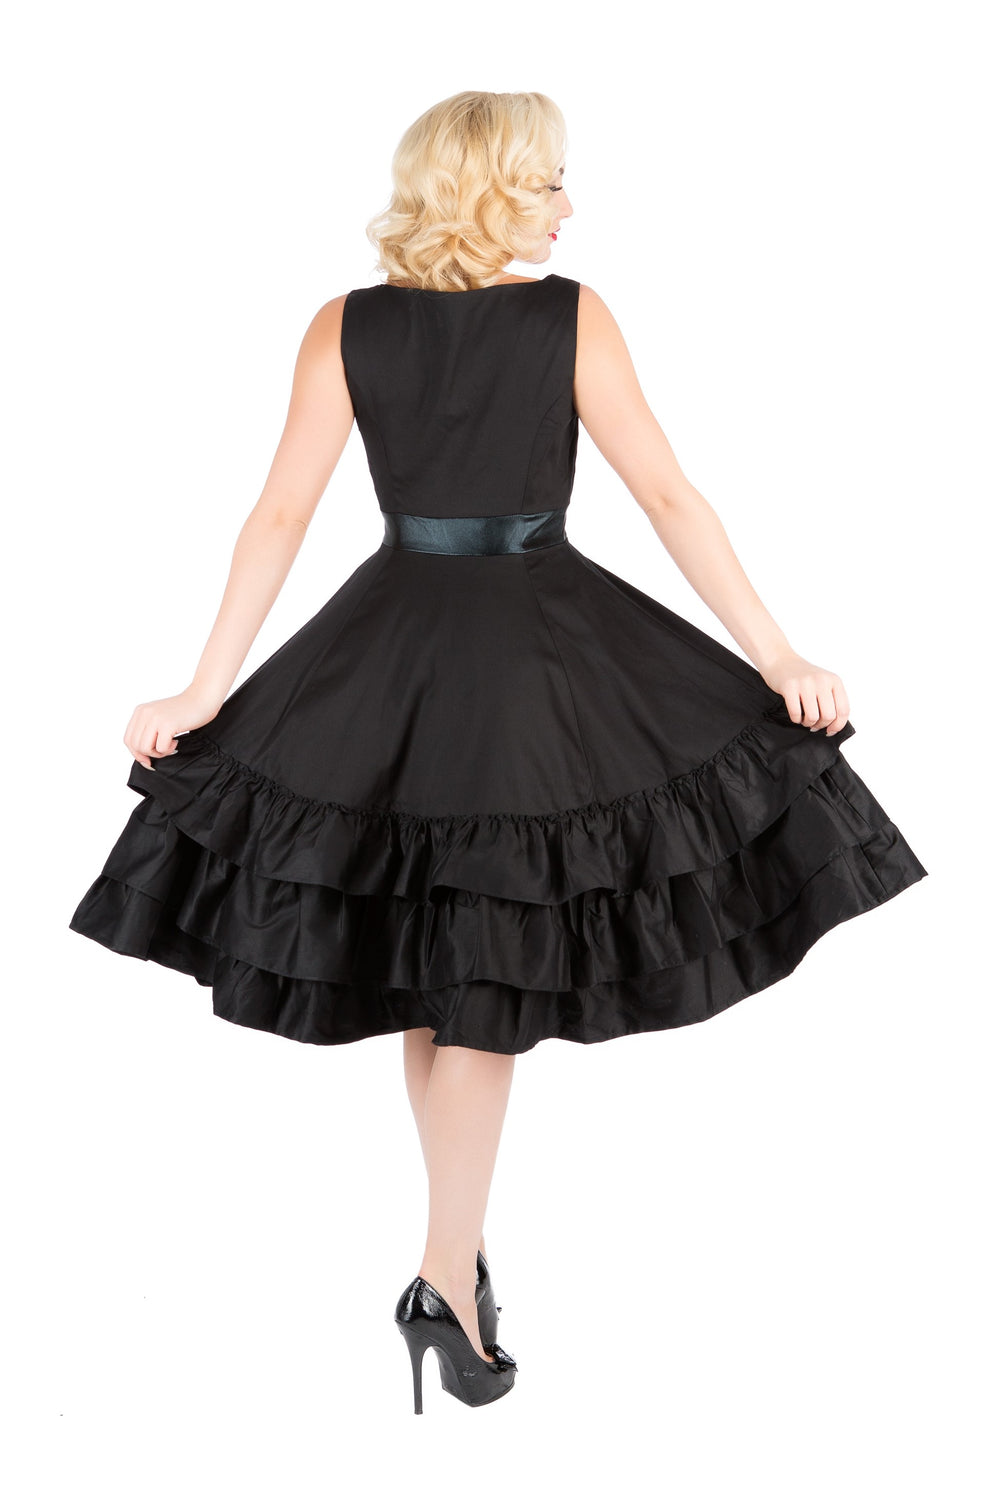 9352 Frills 'n' Thrills Dress